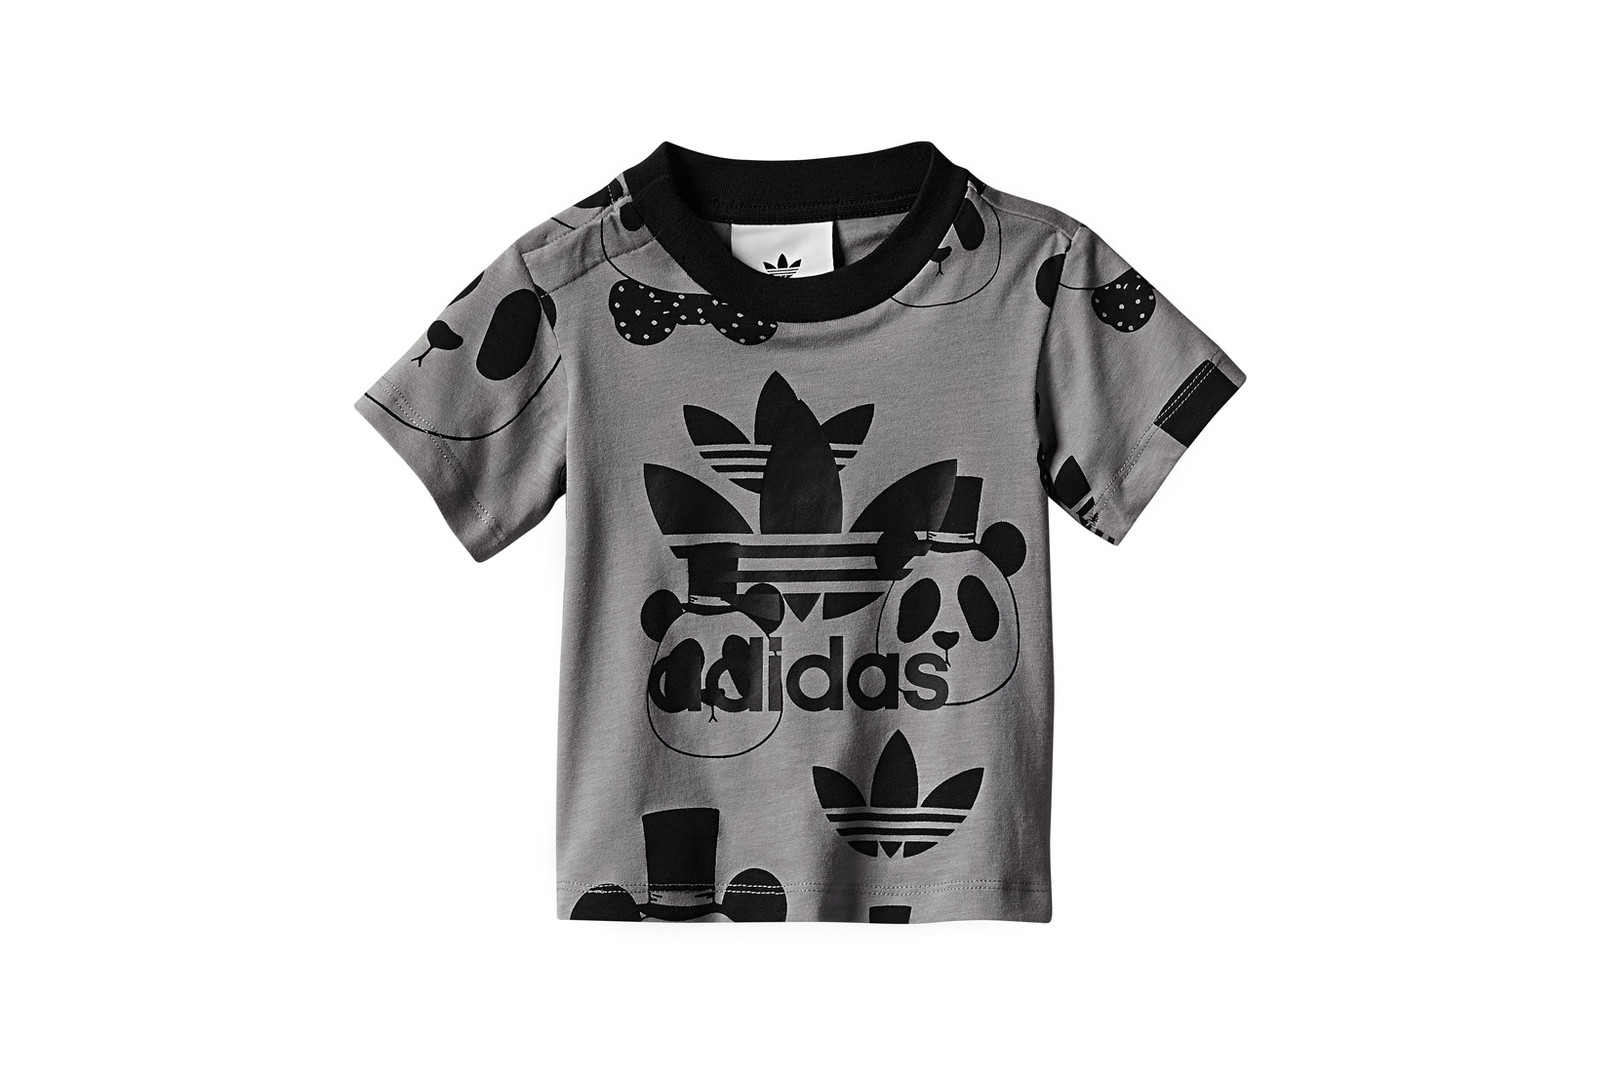 Mini Rodini adidas Originals 2017 Spring Summer Collection Third Drop 2443dcffef04